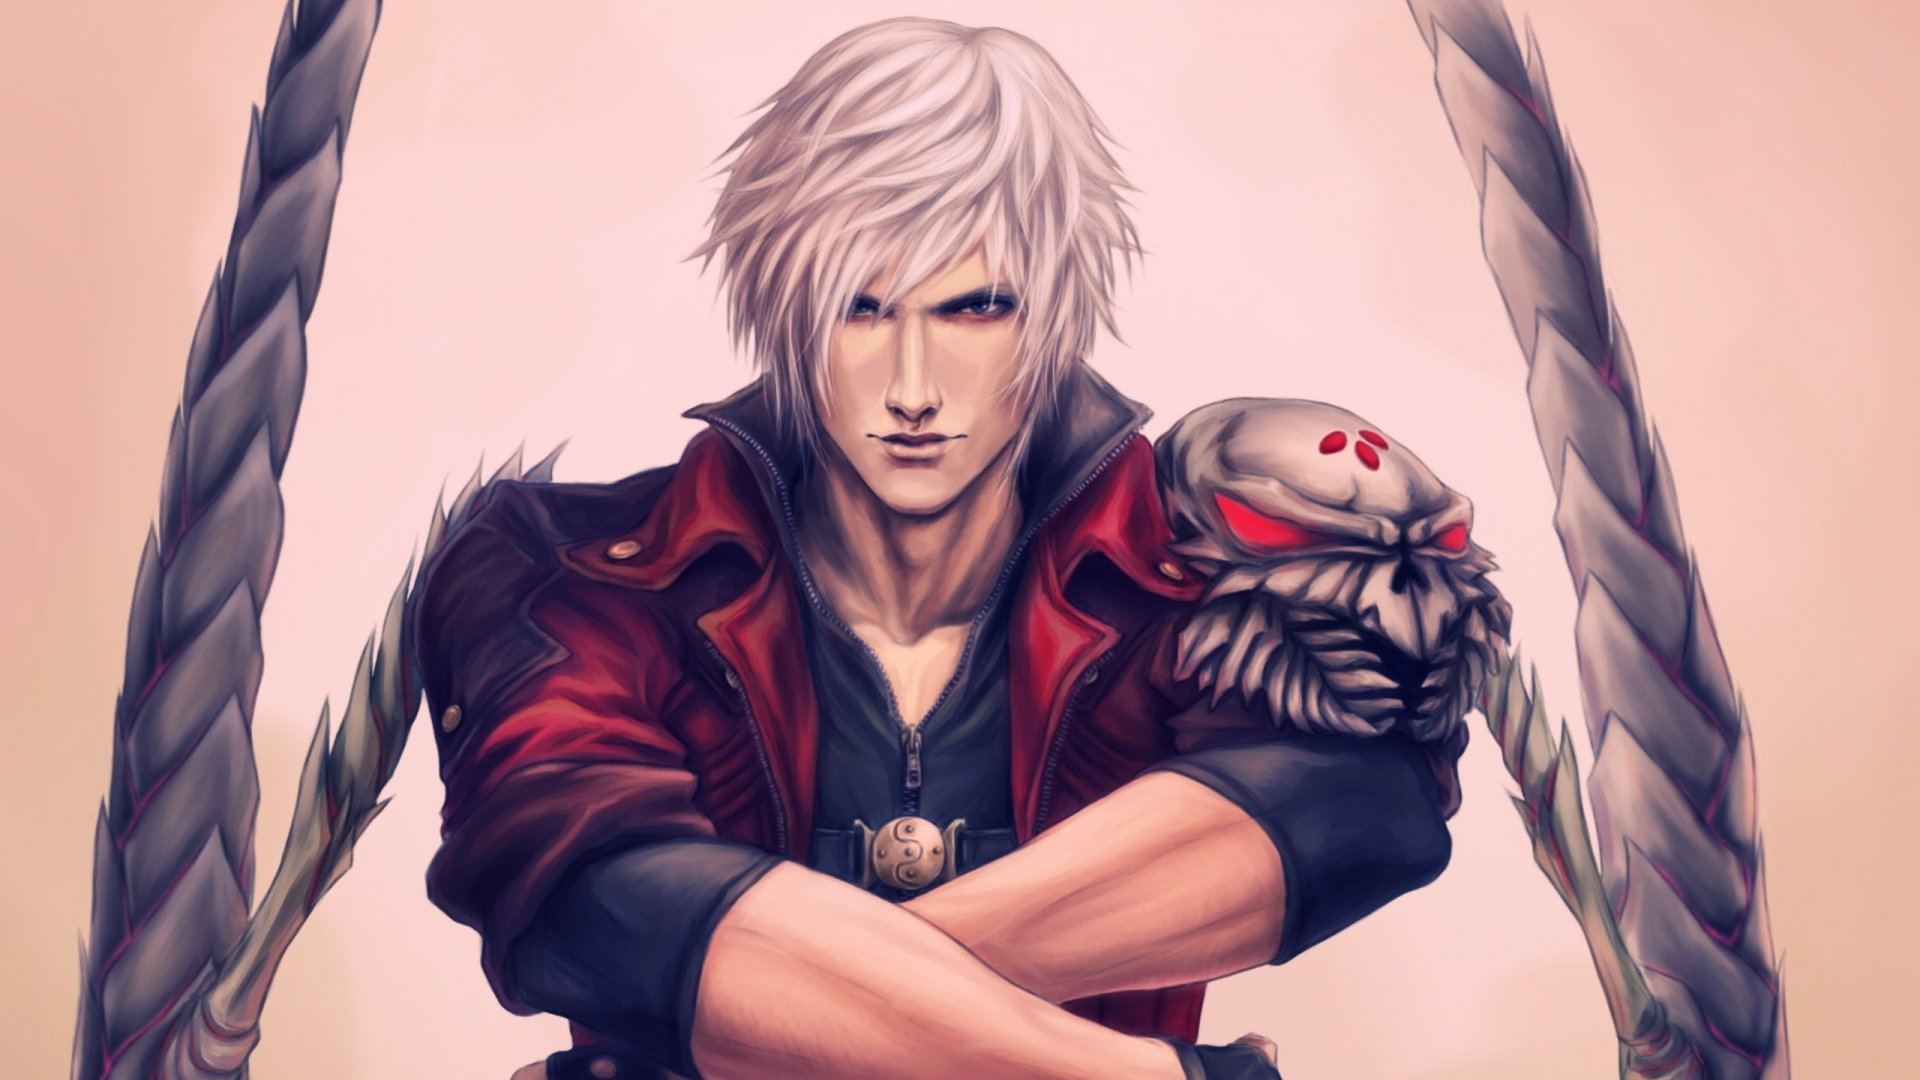 Download wallpaper 1920x1080 devil may cry dante hands look devil may cry dante hands voltagebd Choice Image